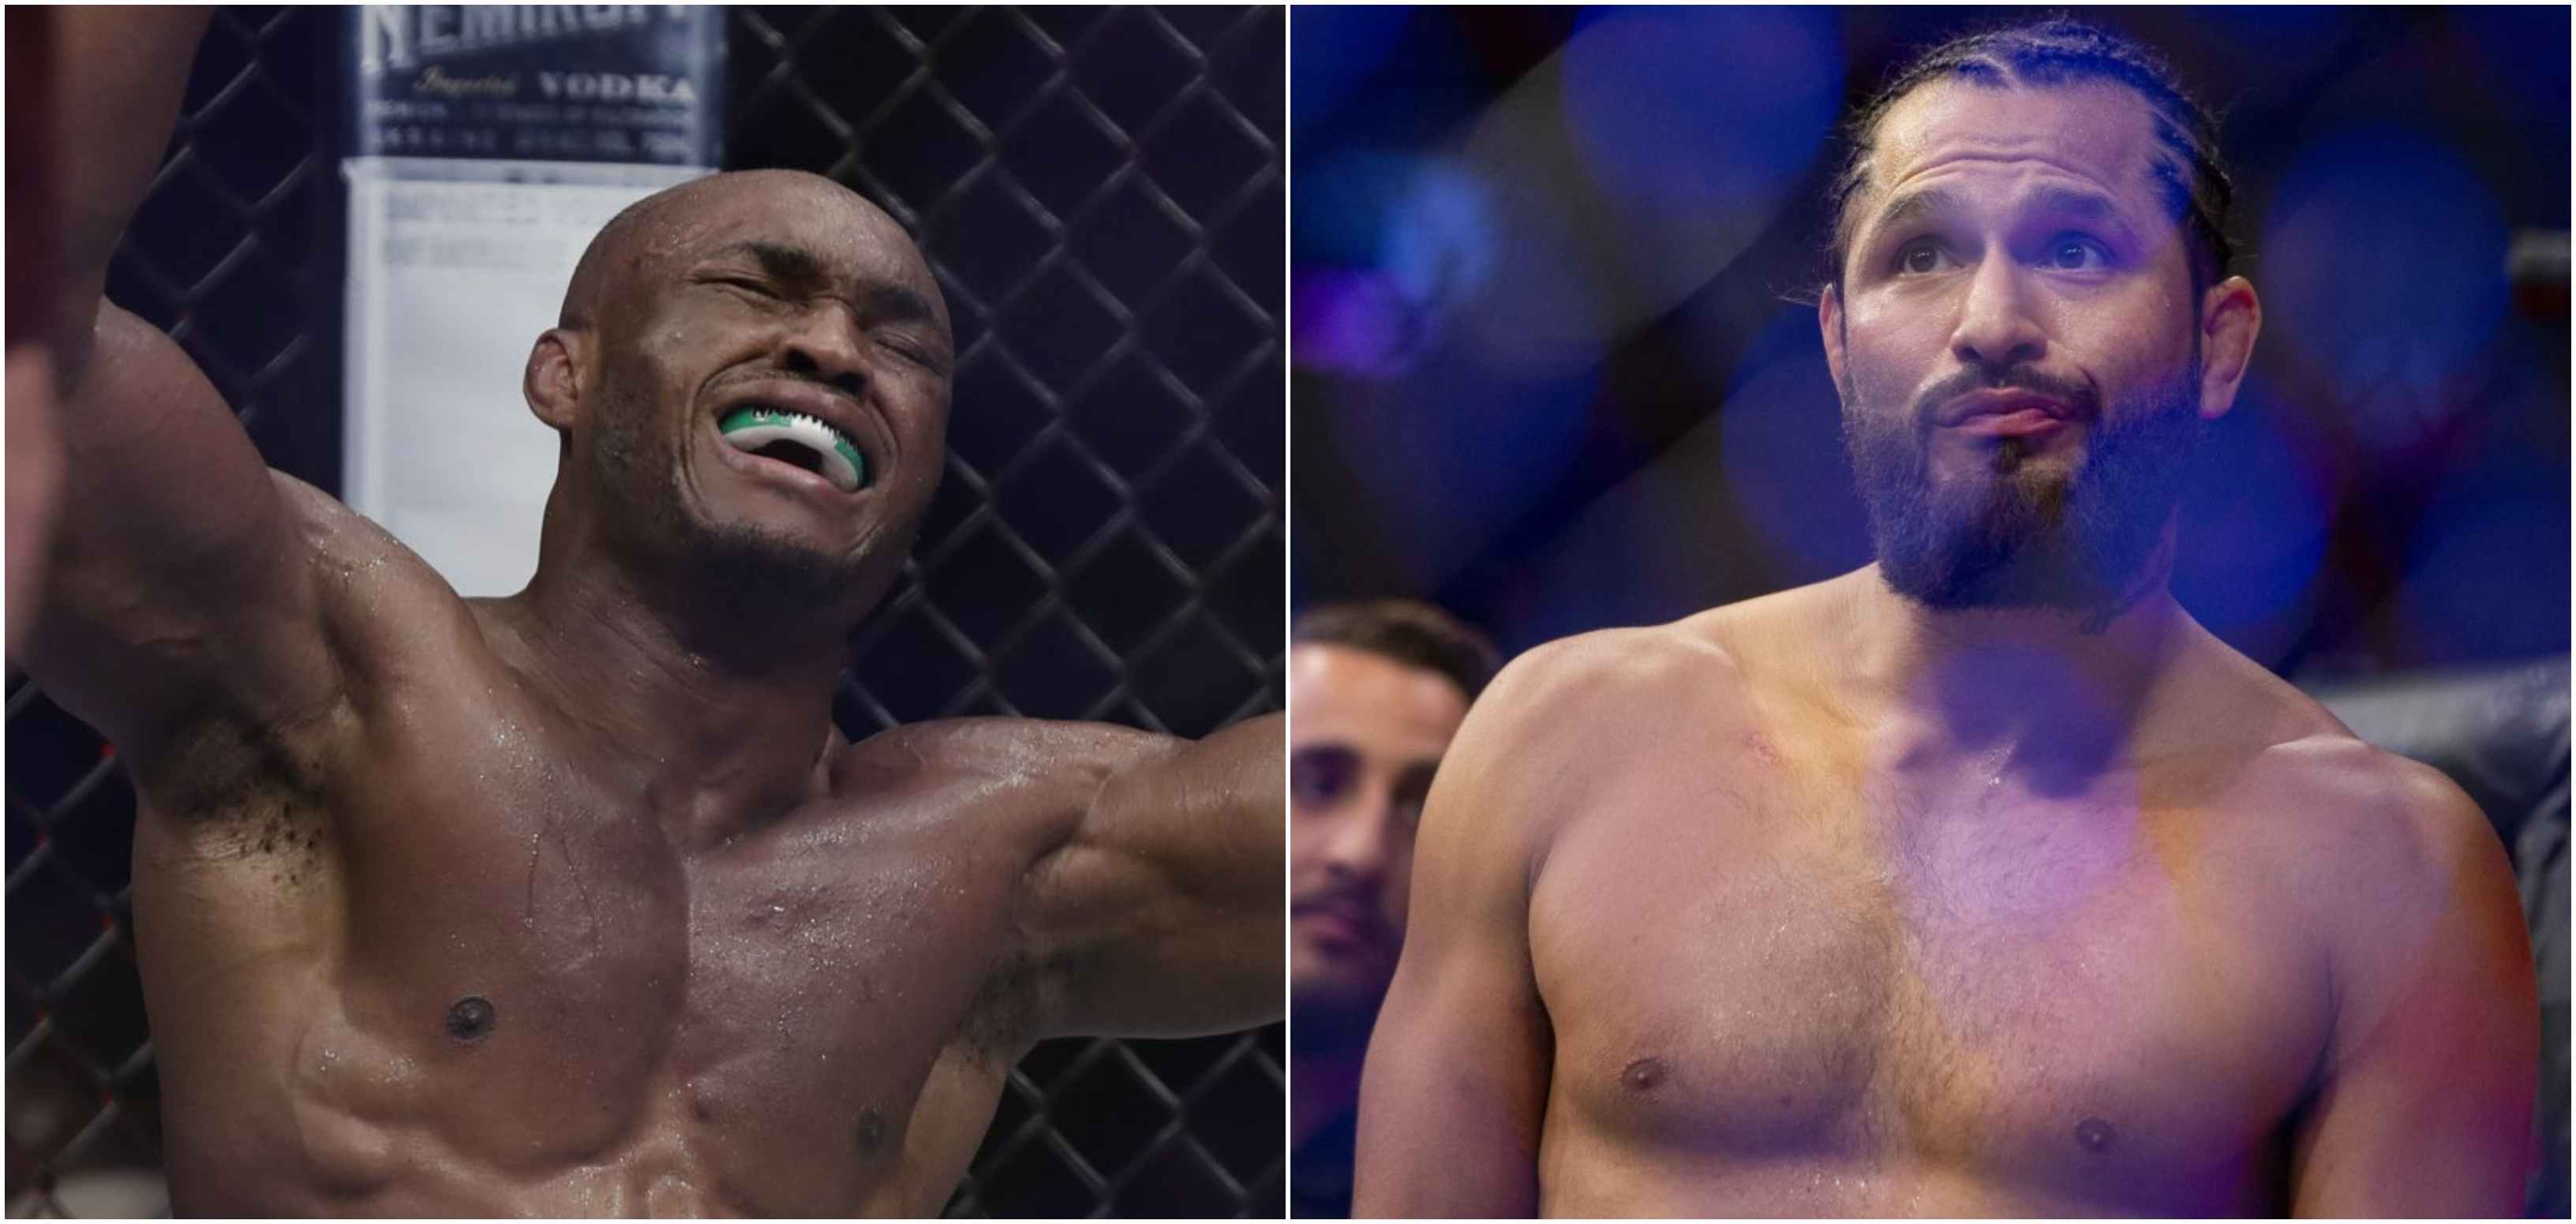 Watch: Jorge Masvidal uses Kamaru Usman's own words against him in clever Youtube diss - Kamaru